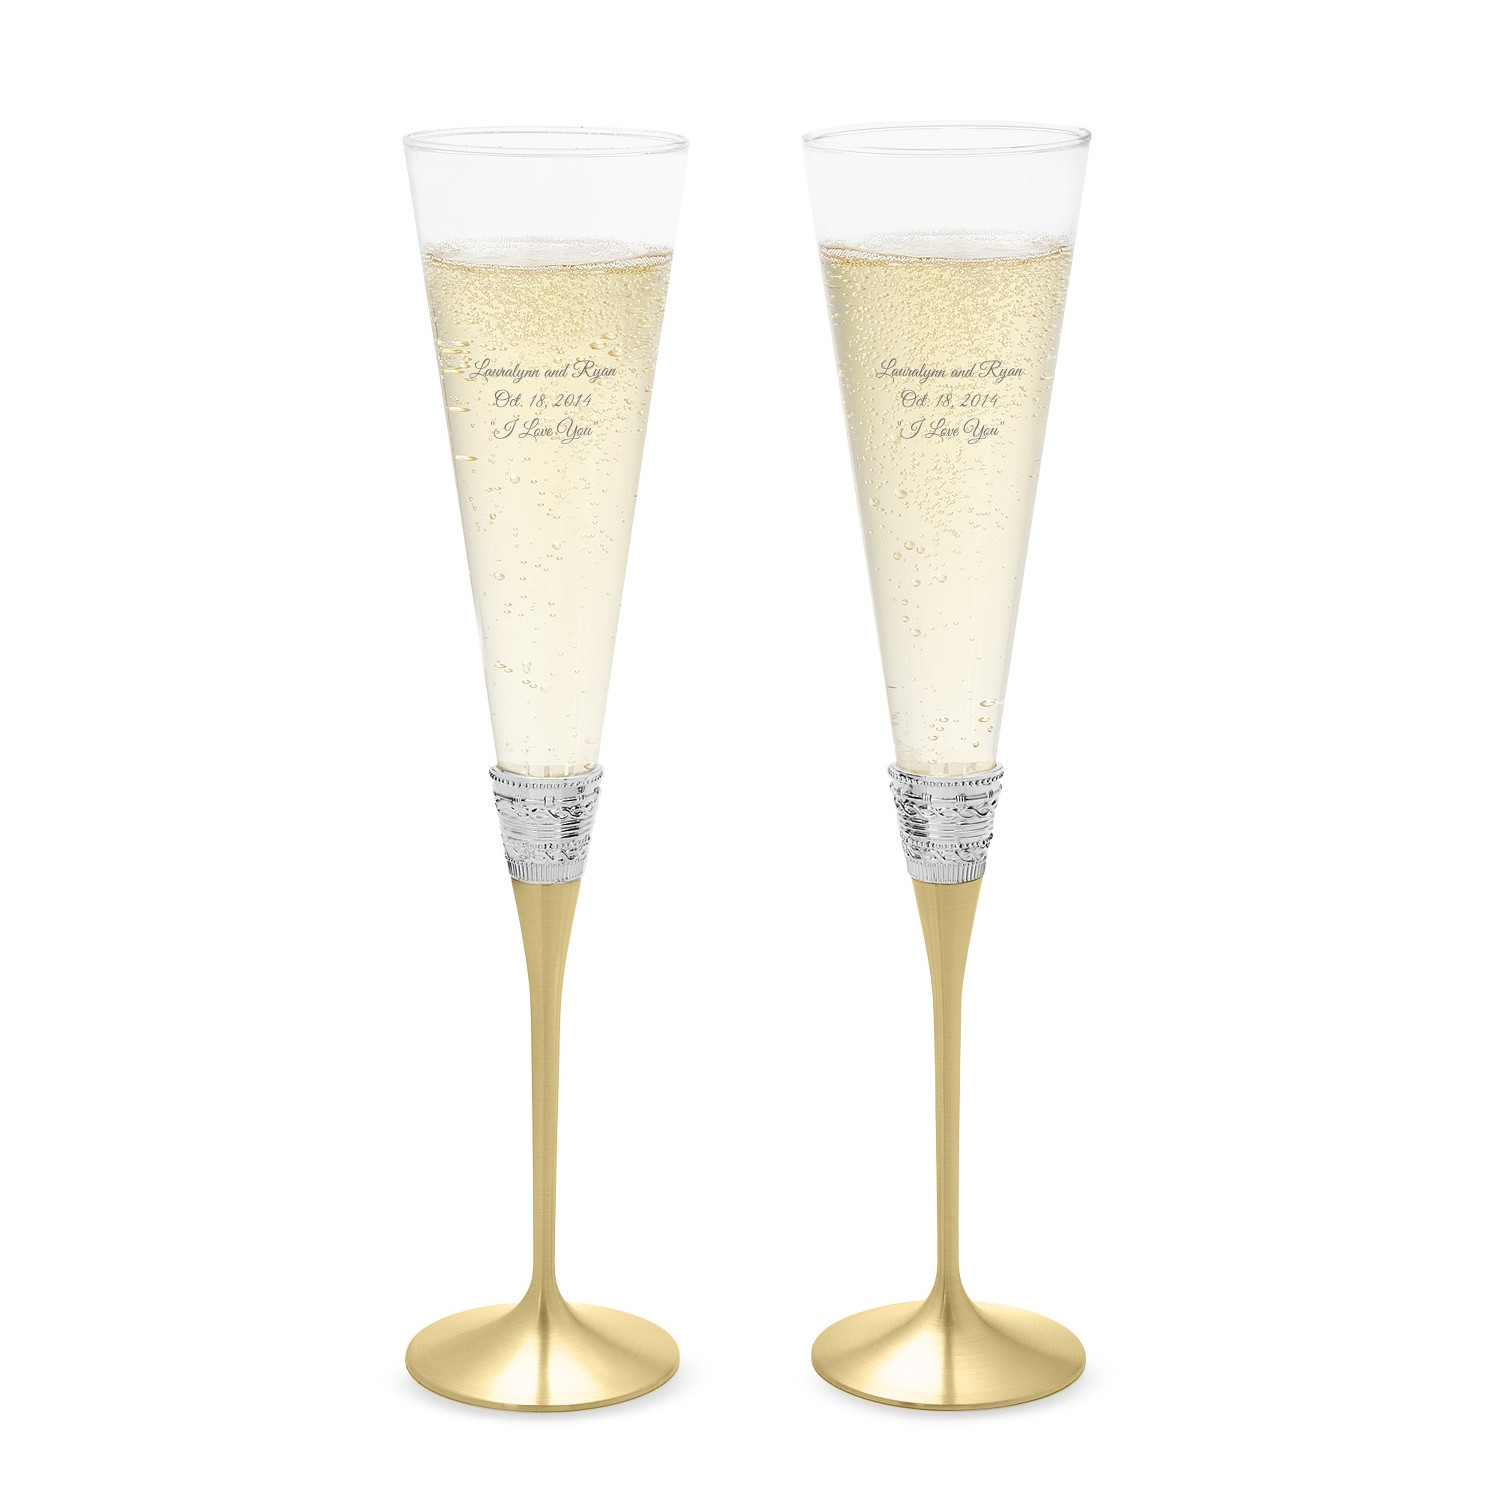 lenox crystal star vase of personalized vera wang by wedgwood with love gold toasting flutes in vera